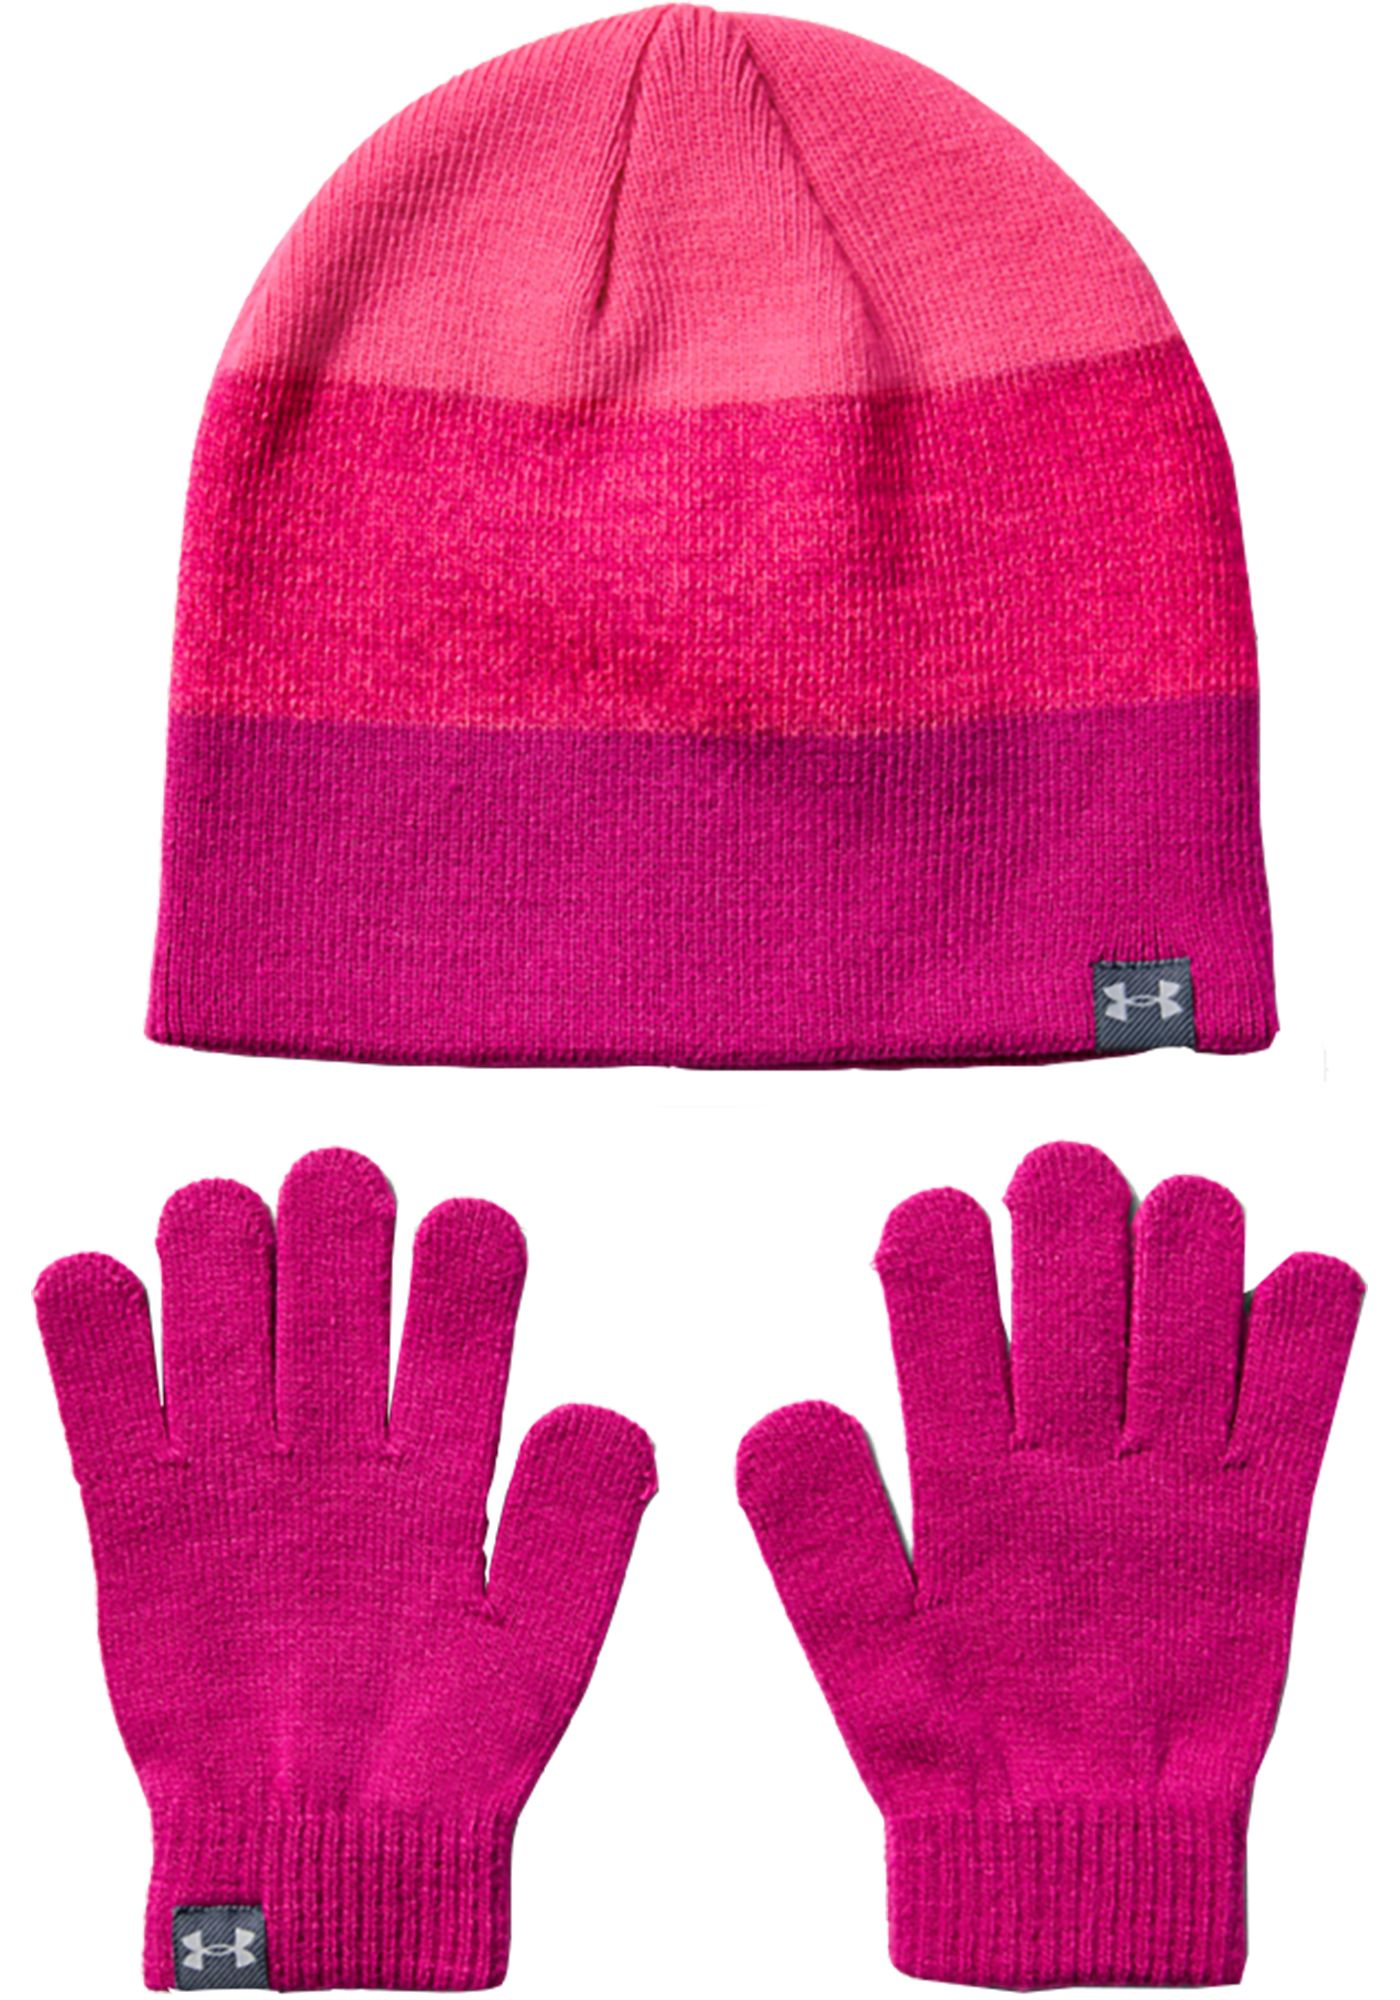 Under Armour Girl's Beanie and Glove Set